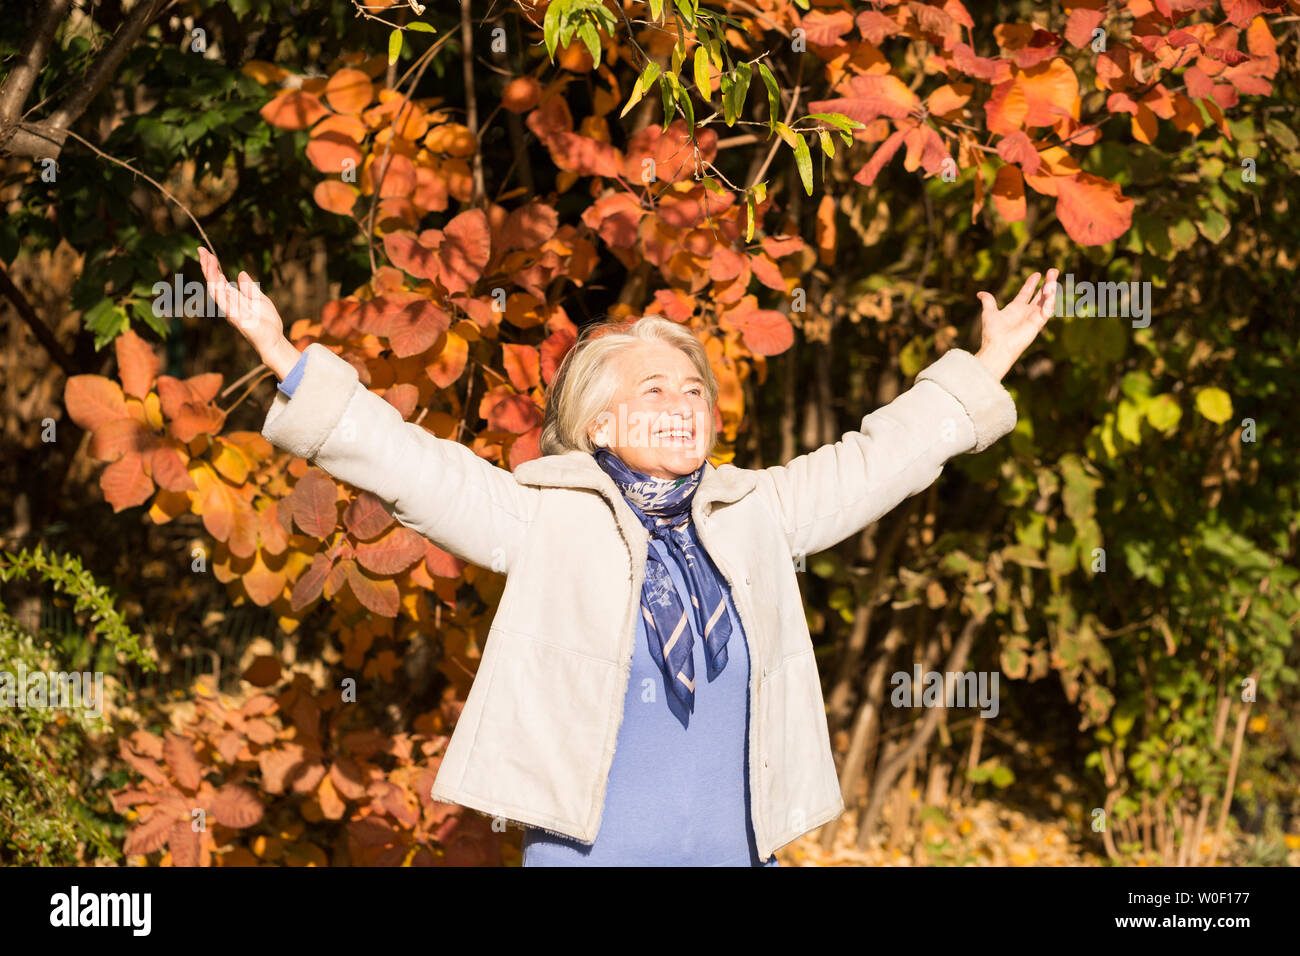 View of a pretty smiling grandma arms in the air in nature in autumnal colors. - Stock Image